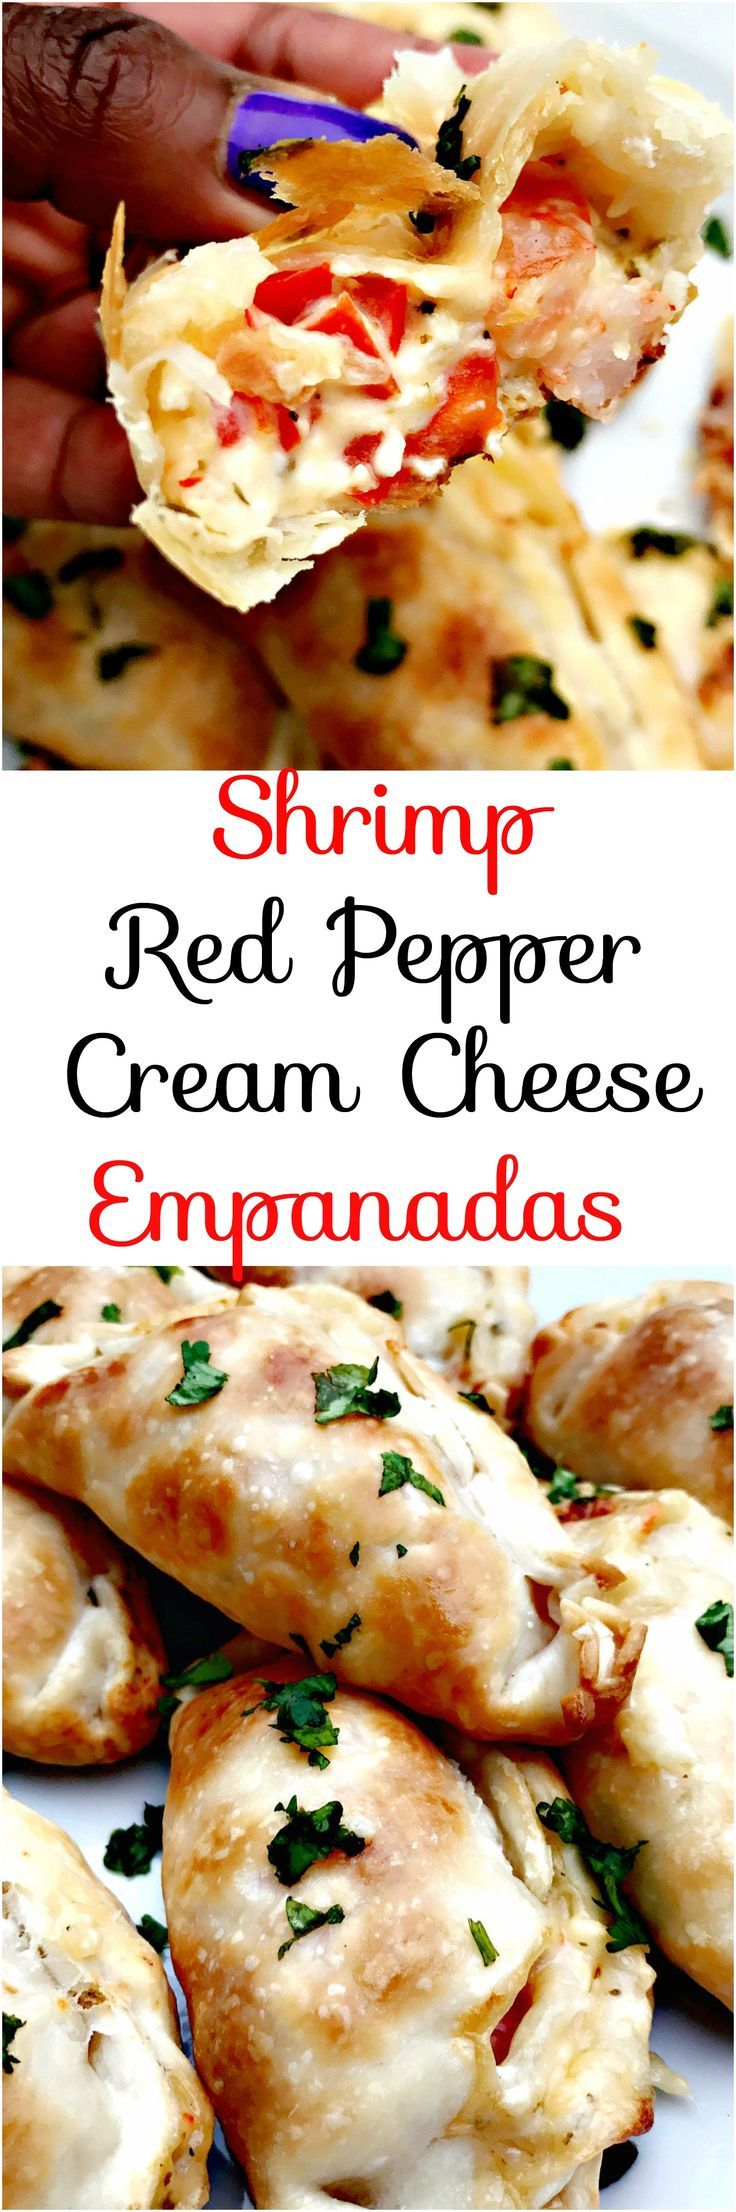 Shrimp Red Pepper Cream Cheese Empanadas with gooey pepperjack and mozzarella cheese loaded into a savory flaky, buttery crust.